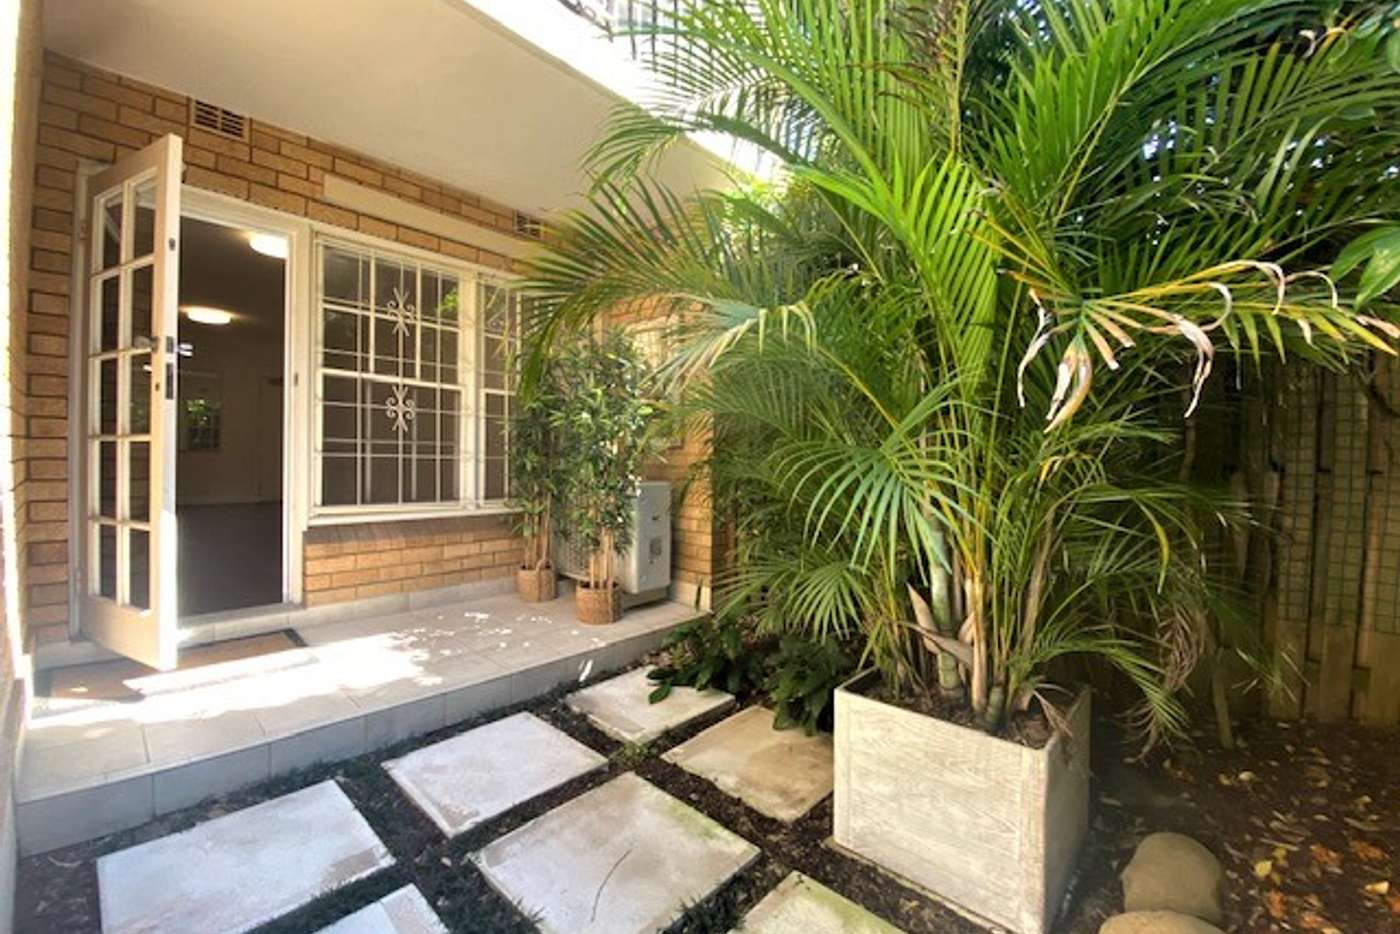 Main view of Homely apartment listing, 9/50B Ocean Street, Woollahra NSW 2025